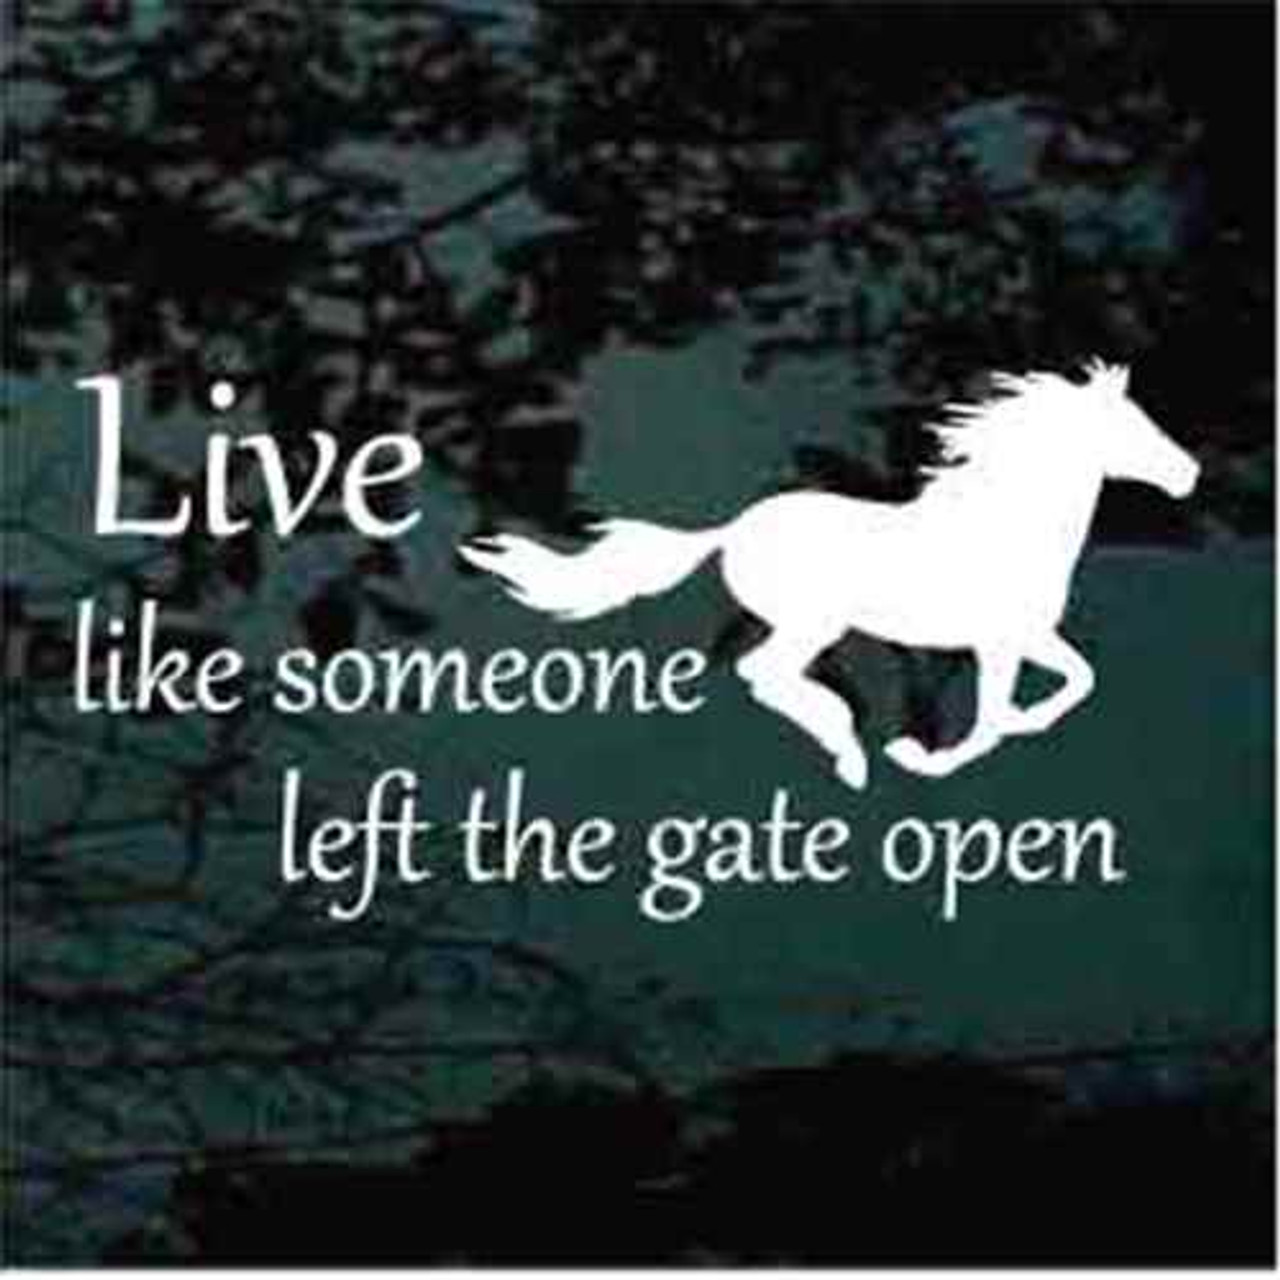 live like someone left the gate open decals window stickers